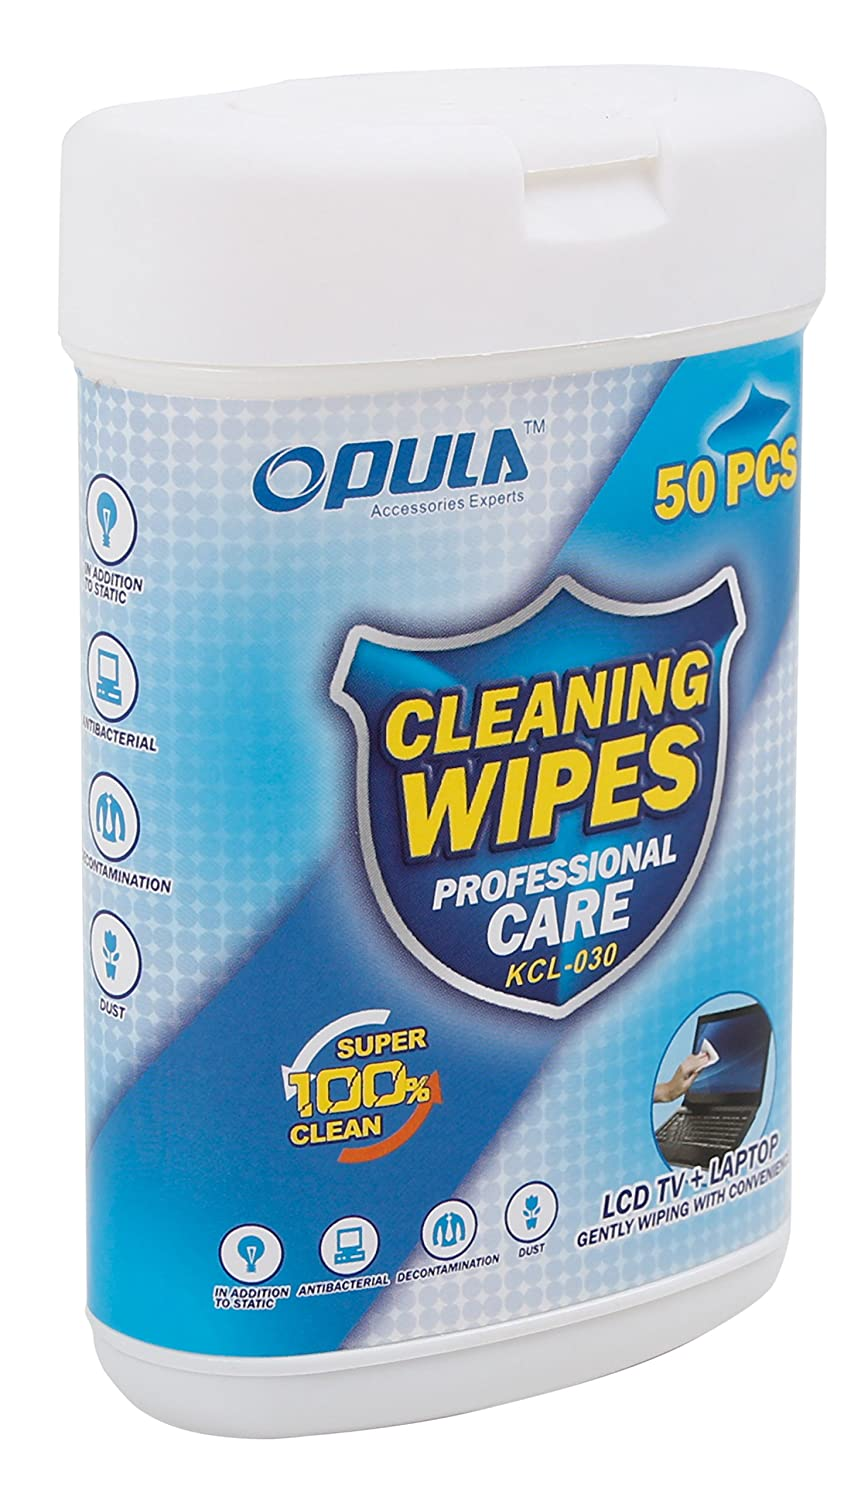 50 Anti-Static LCD Cleaning Cloths Suitable for use with The Lenovo LifeTab E10511 (MD 60637) - by DURAGADGET 5057697465877